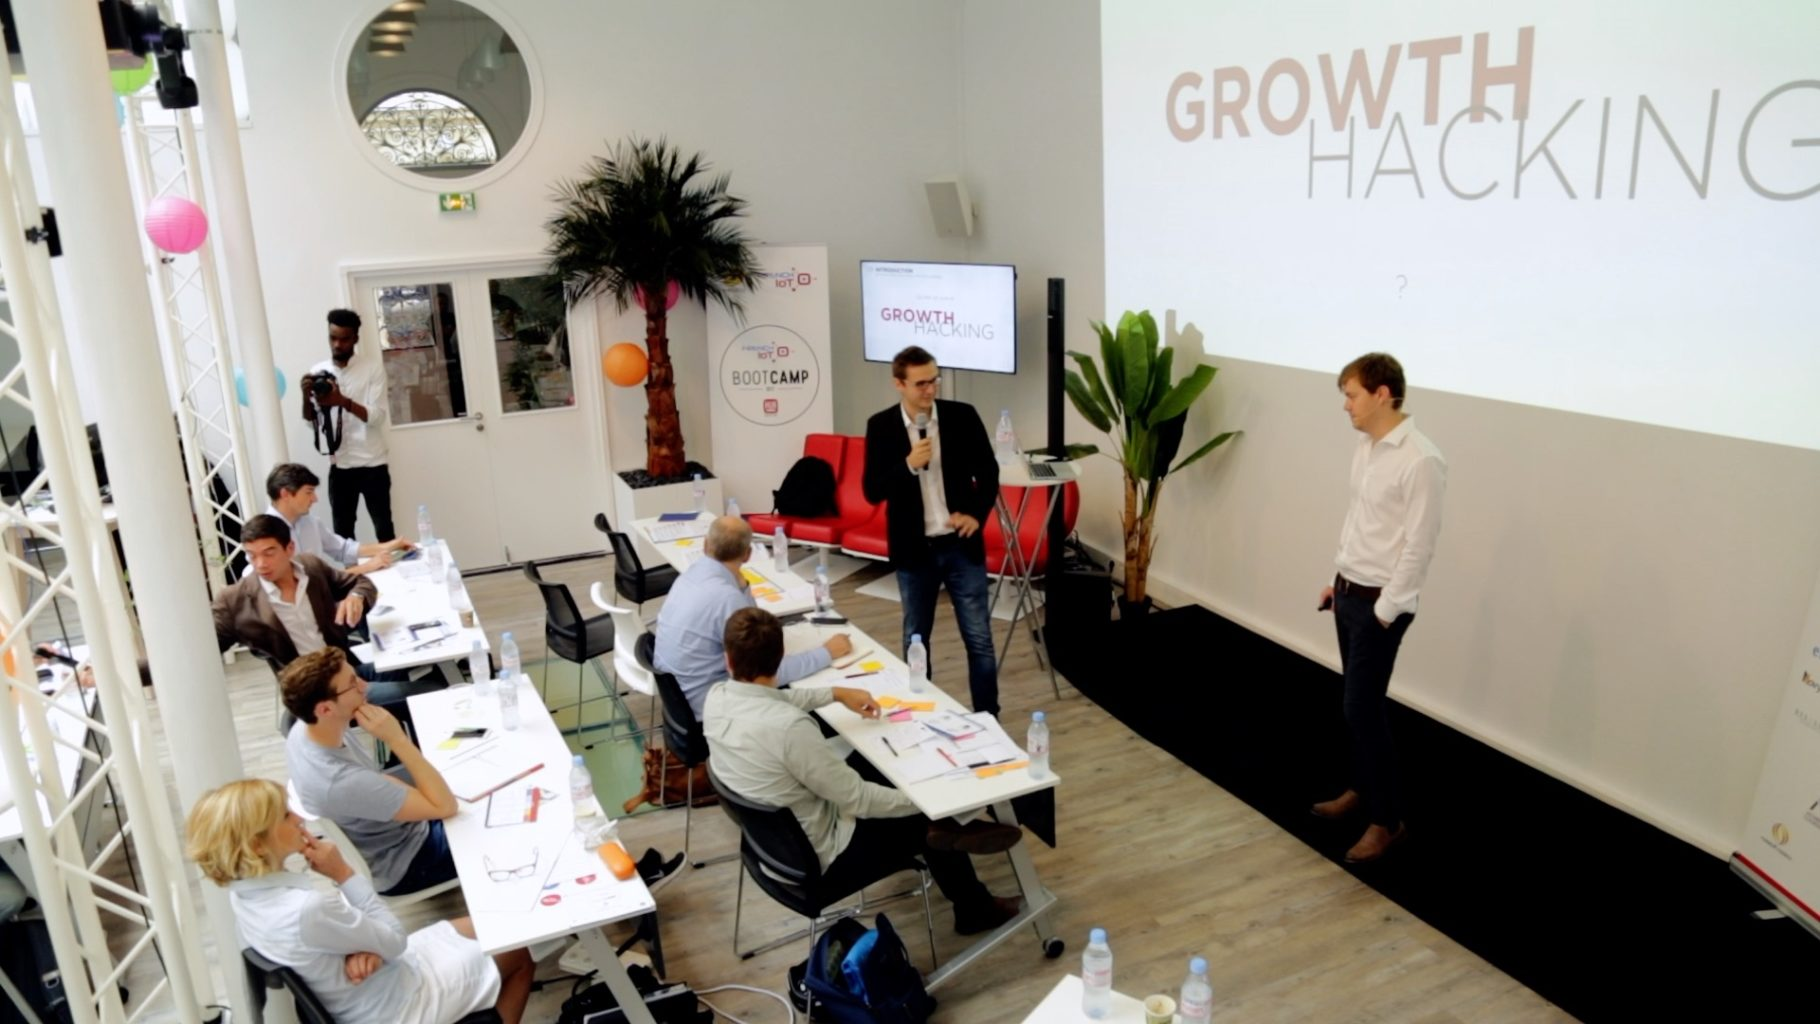 Le Growth Hacking pour booster la croissance des start-up